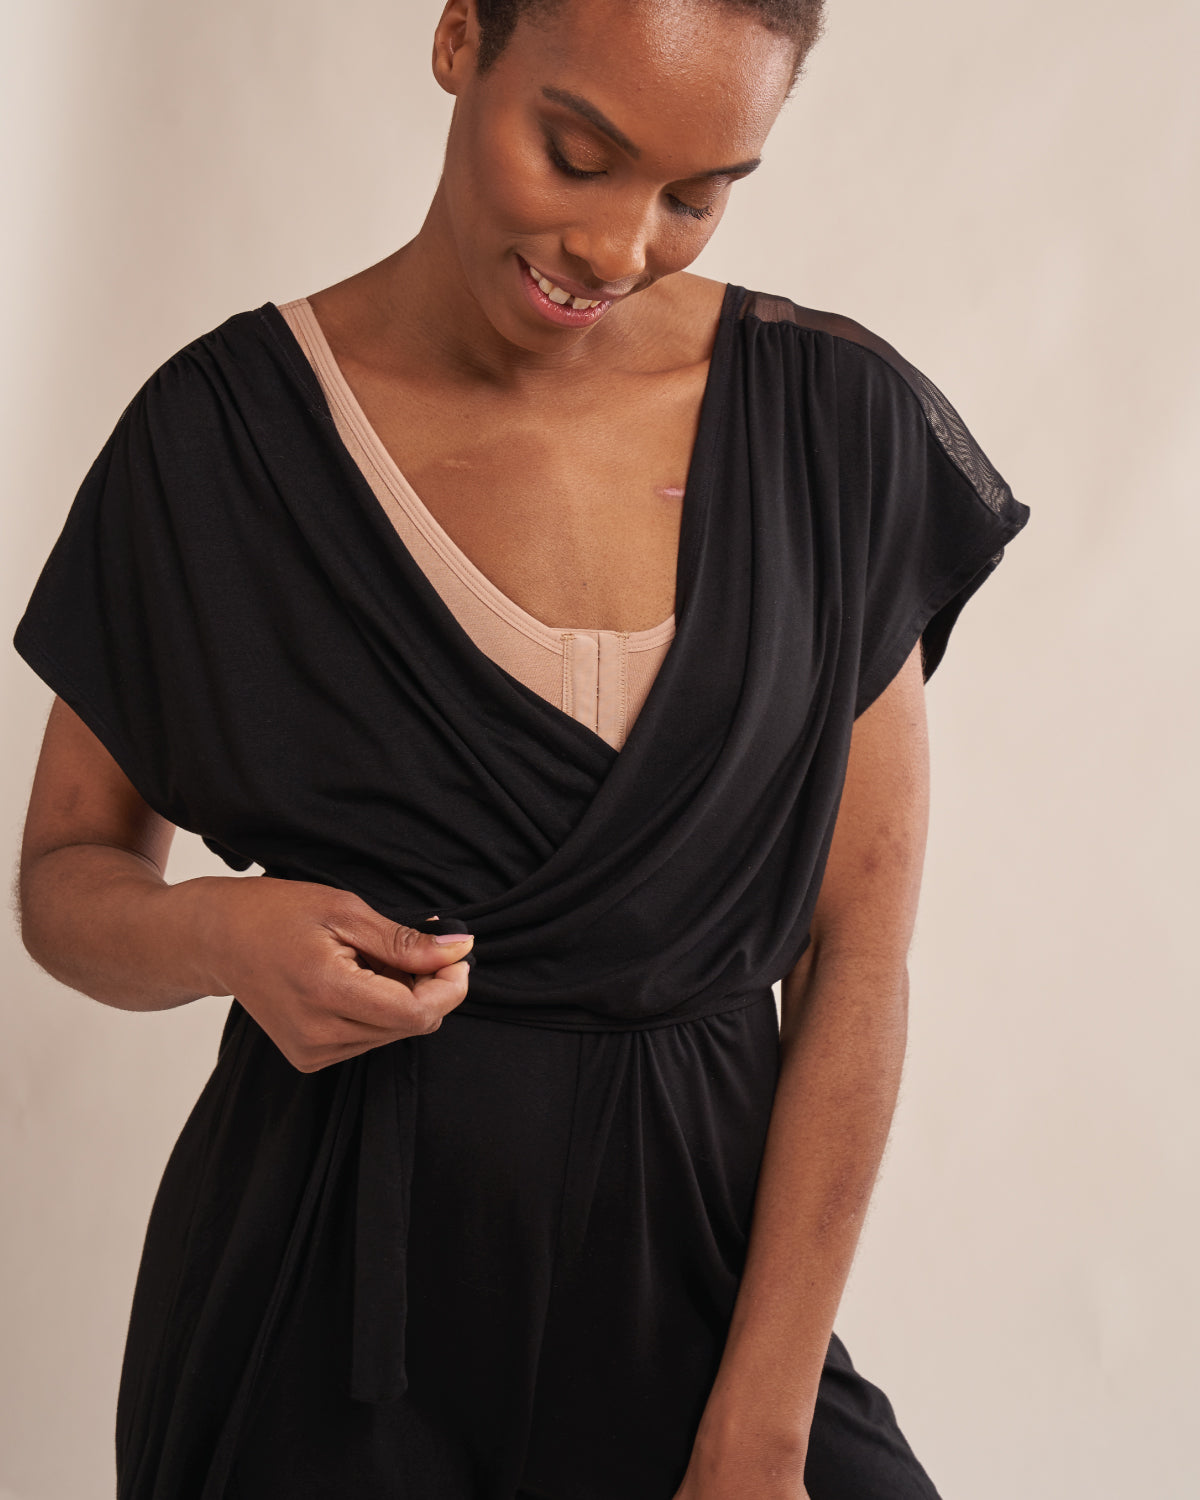 Black, wrap front soft modal romper with mesh shoulders, wide armholes, tie belt and attachable drain belt for after surgery recovery.